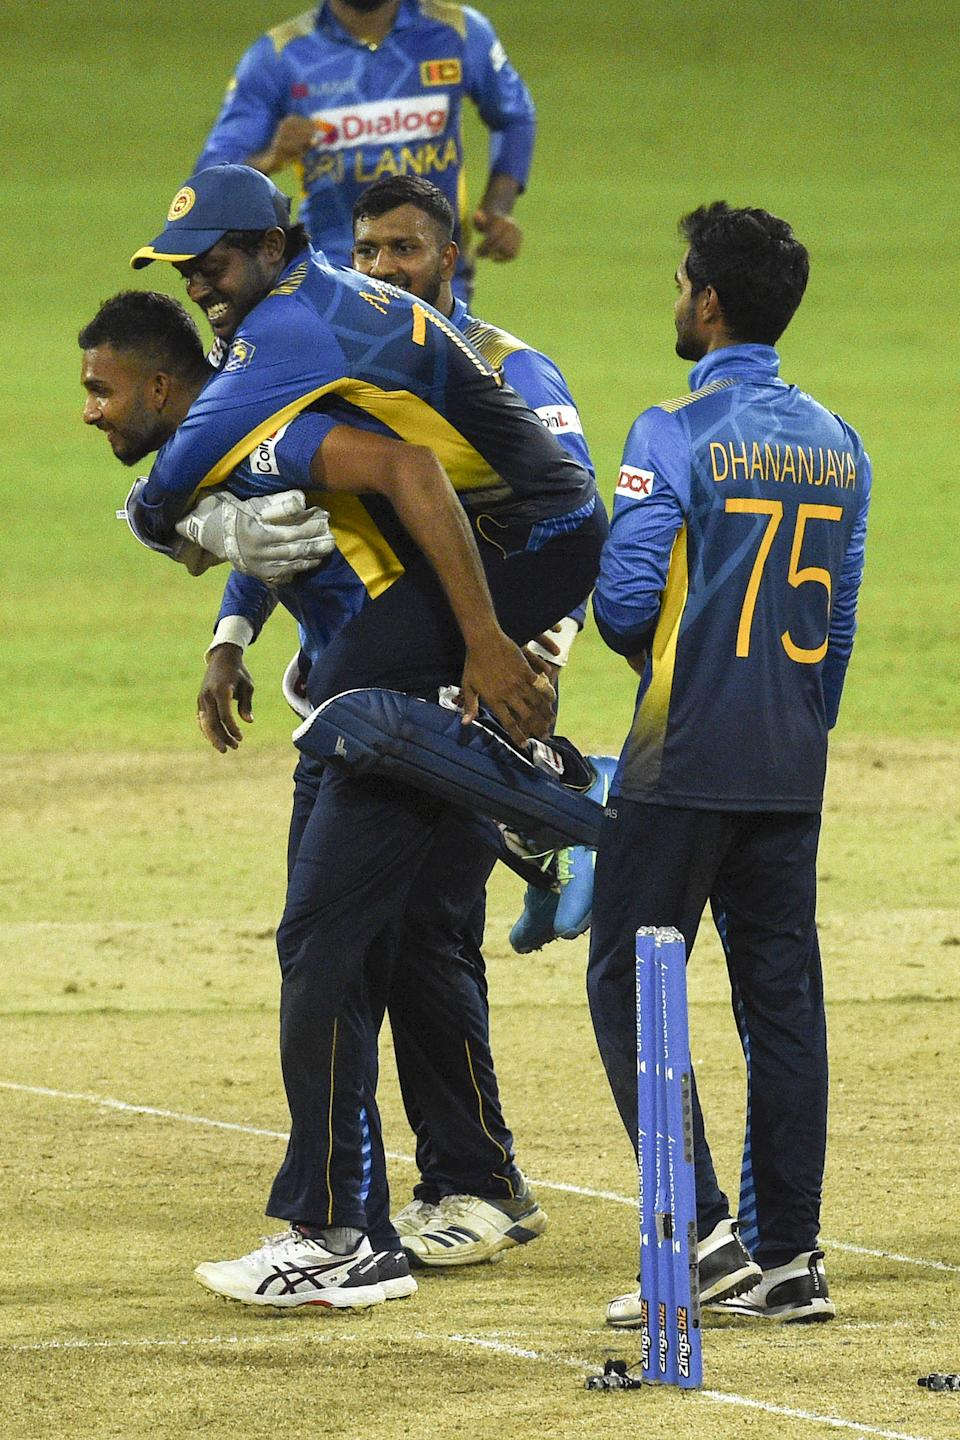 Sri Lanka's cricket captain Dasun Shanaka (L) celebrates with his teammates after the dismissal India's Manish Pandey (not pictured) during the second one-day international (ODI) cricket match between Sri Lanka and India at the R.Premadasa Stadium in Colombo on July 20, 2021. (Photo by Ishara S. KODIKARA / AFP) (Photo by ISHARA S. KODIKARA/AFP via Getty Images)